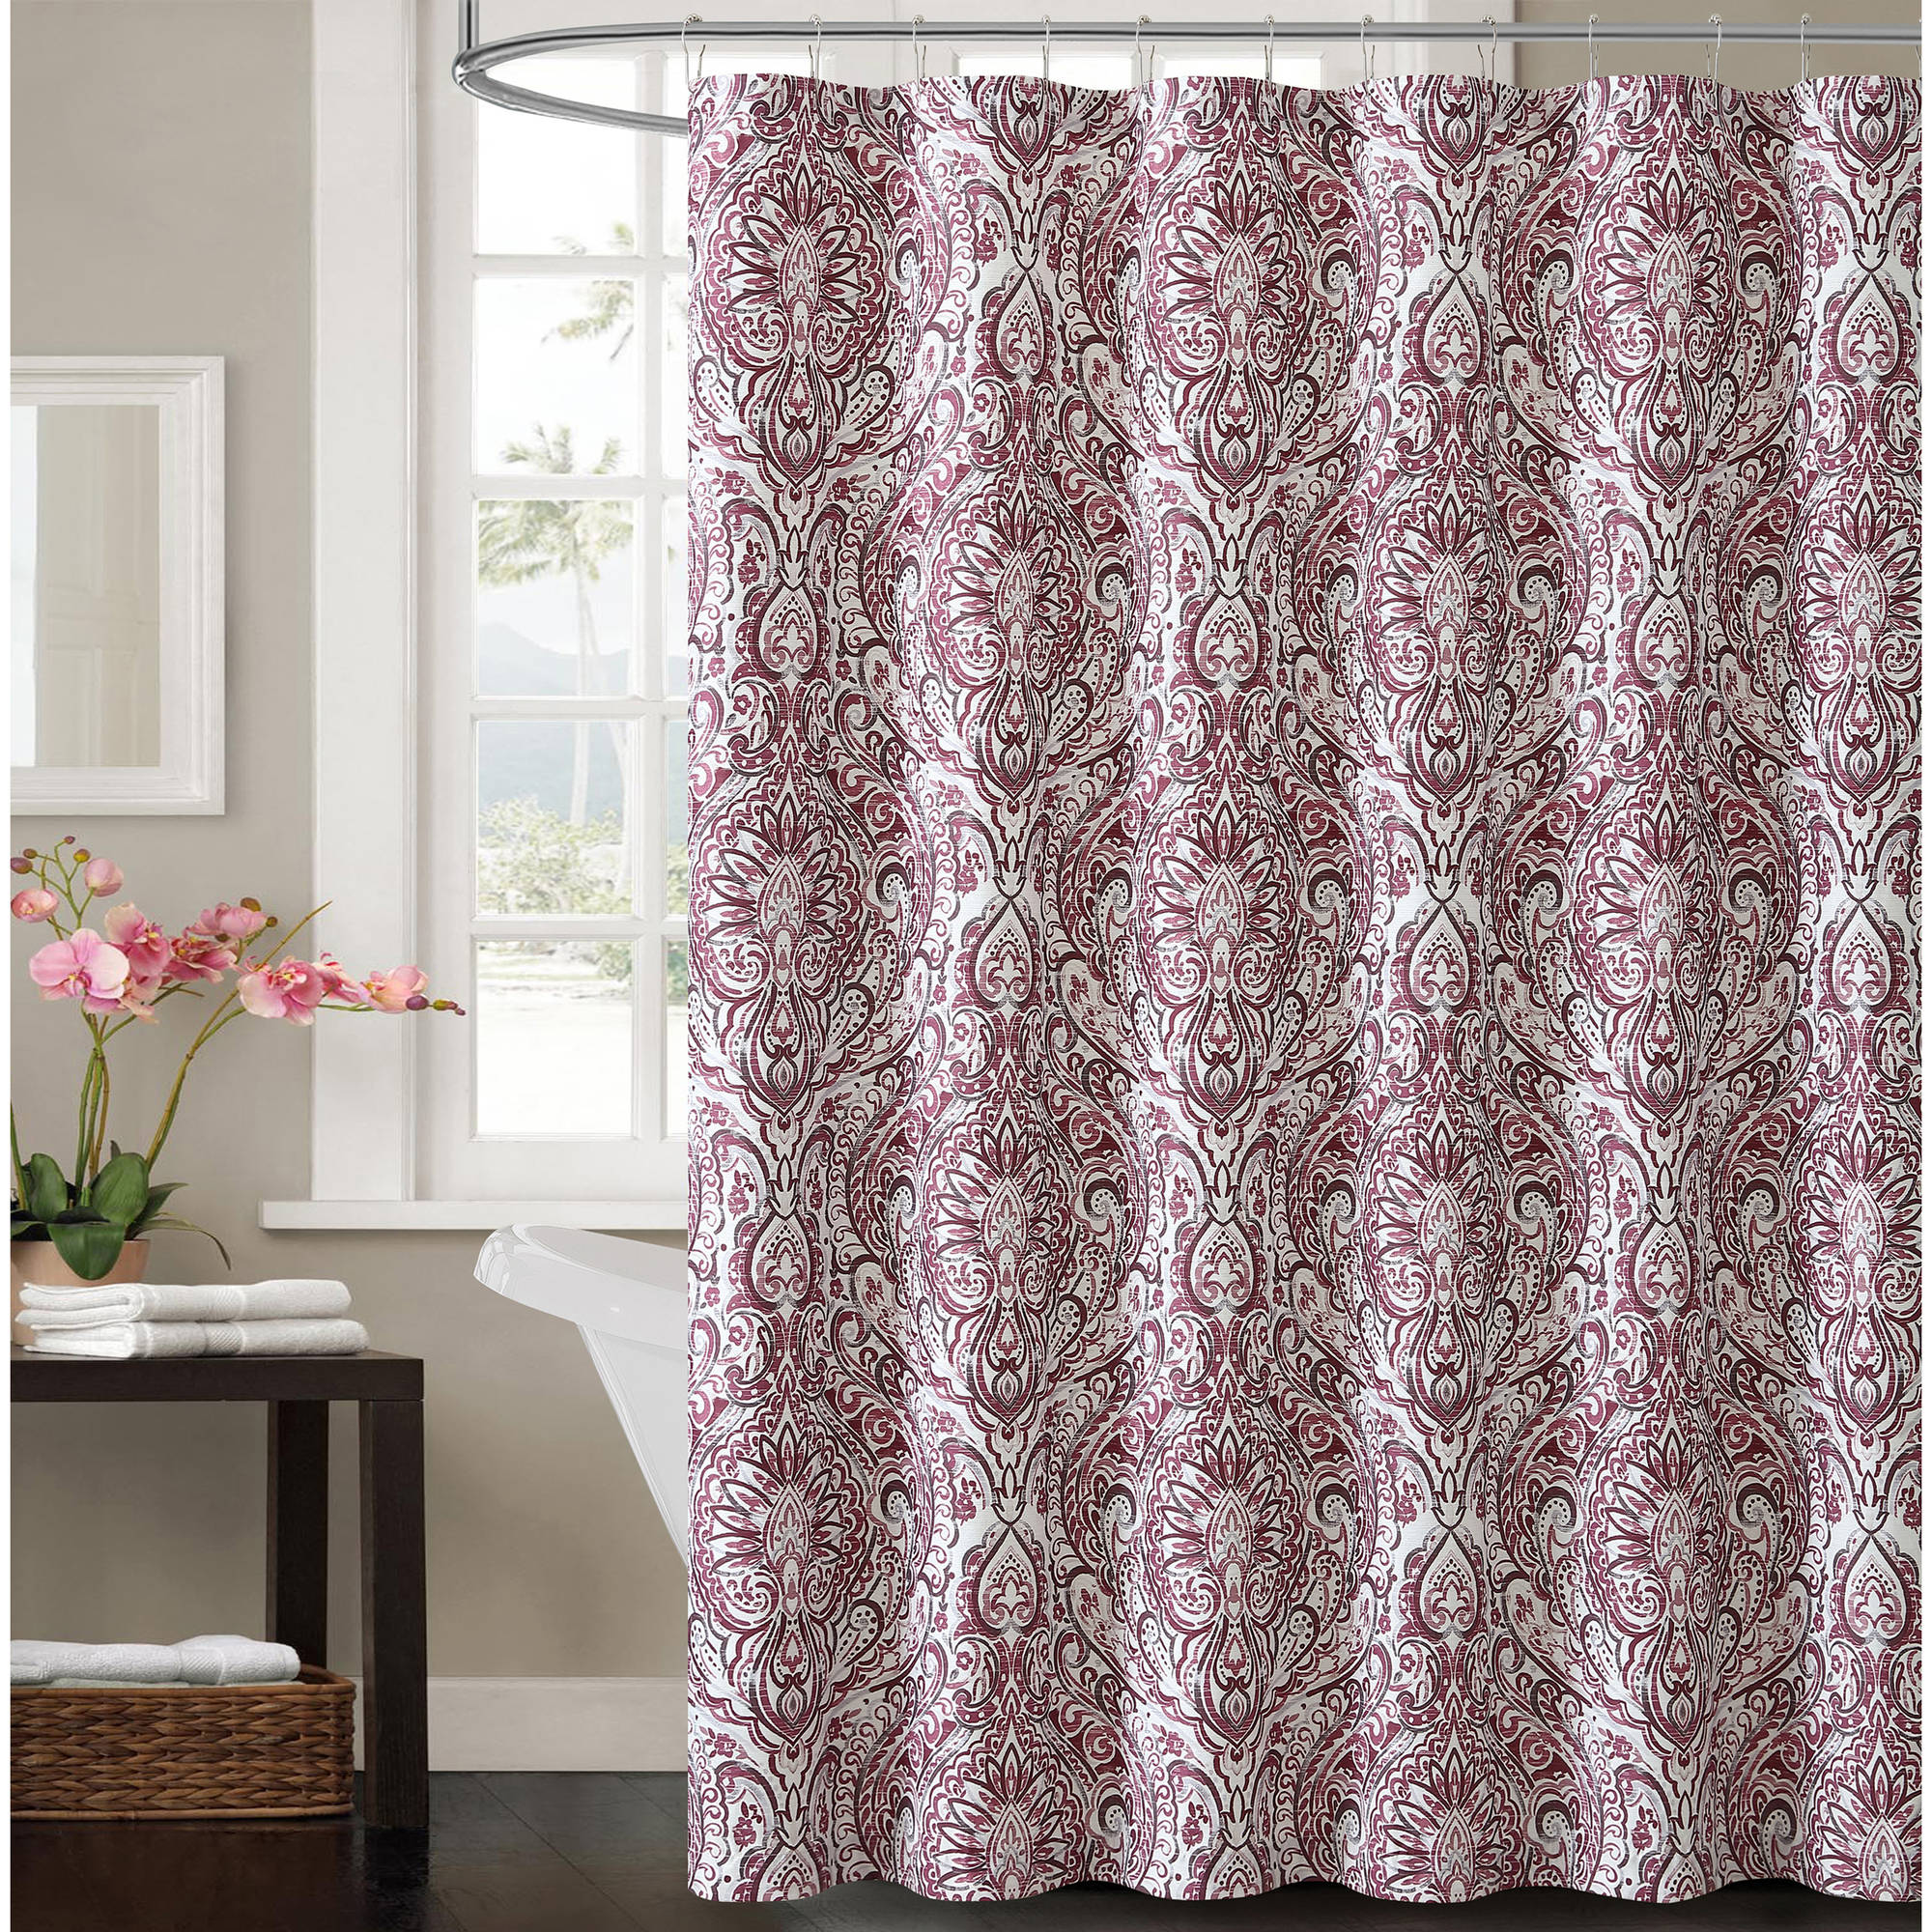 VCNY Home Plum Elanza Damask 72x72 Shower Curtain Walmartcom